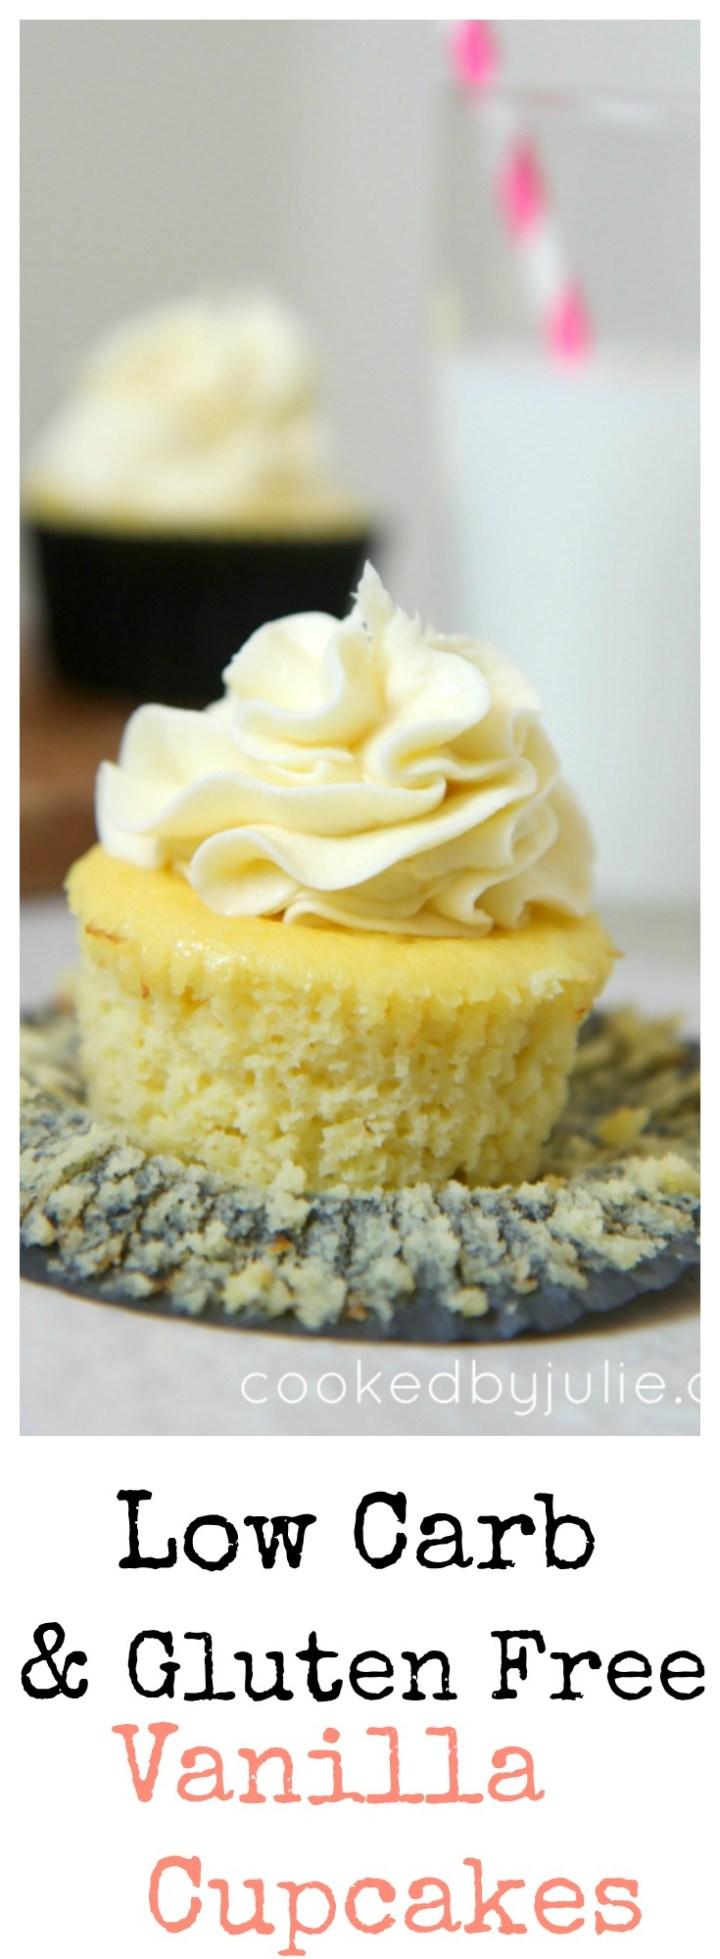 Learn how to make these low carb and gluten free vanilla cupcakes at cookedbyjulie.com